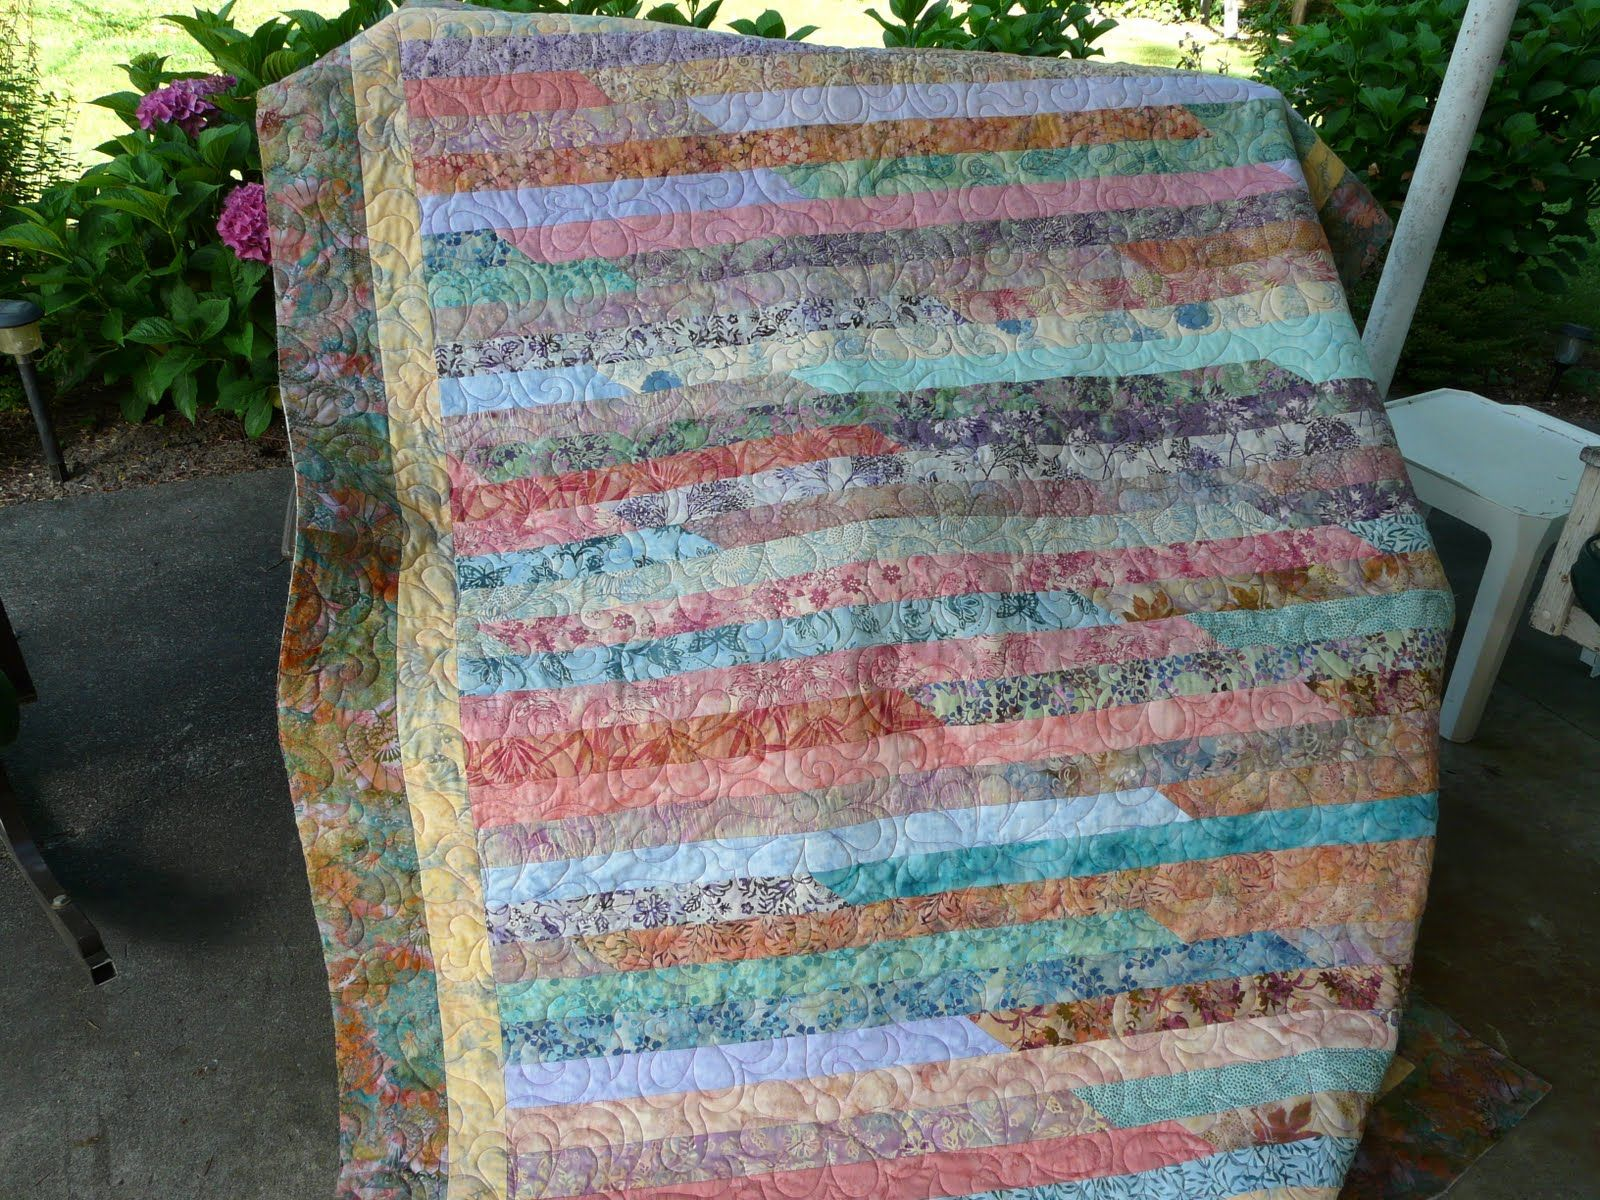 Jelly roll quilts timber hill threads jelly roll race quilts jelly roll quilts timber hill threads jelly roll race quilts baditri Images